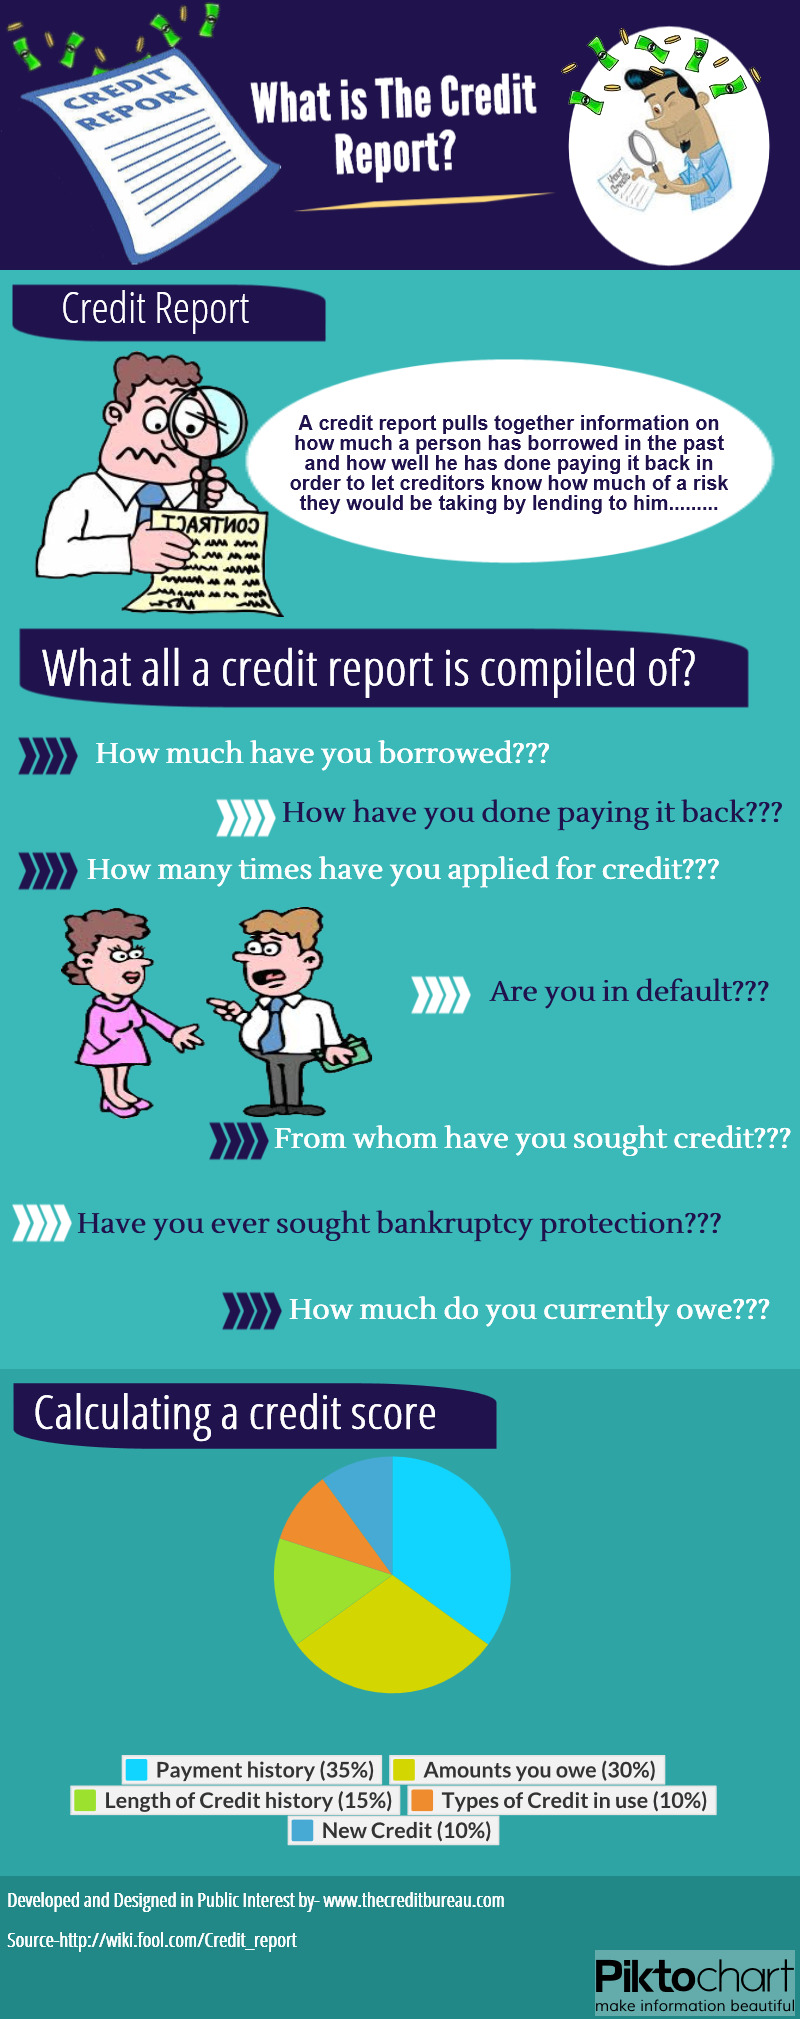 What Is The Credit Report